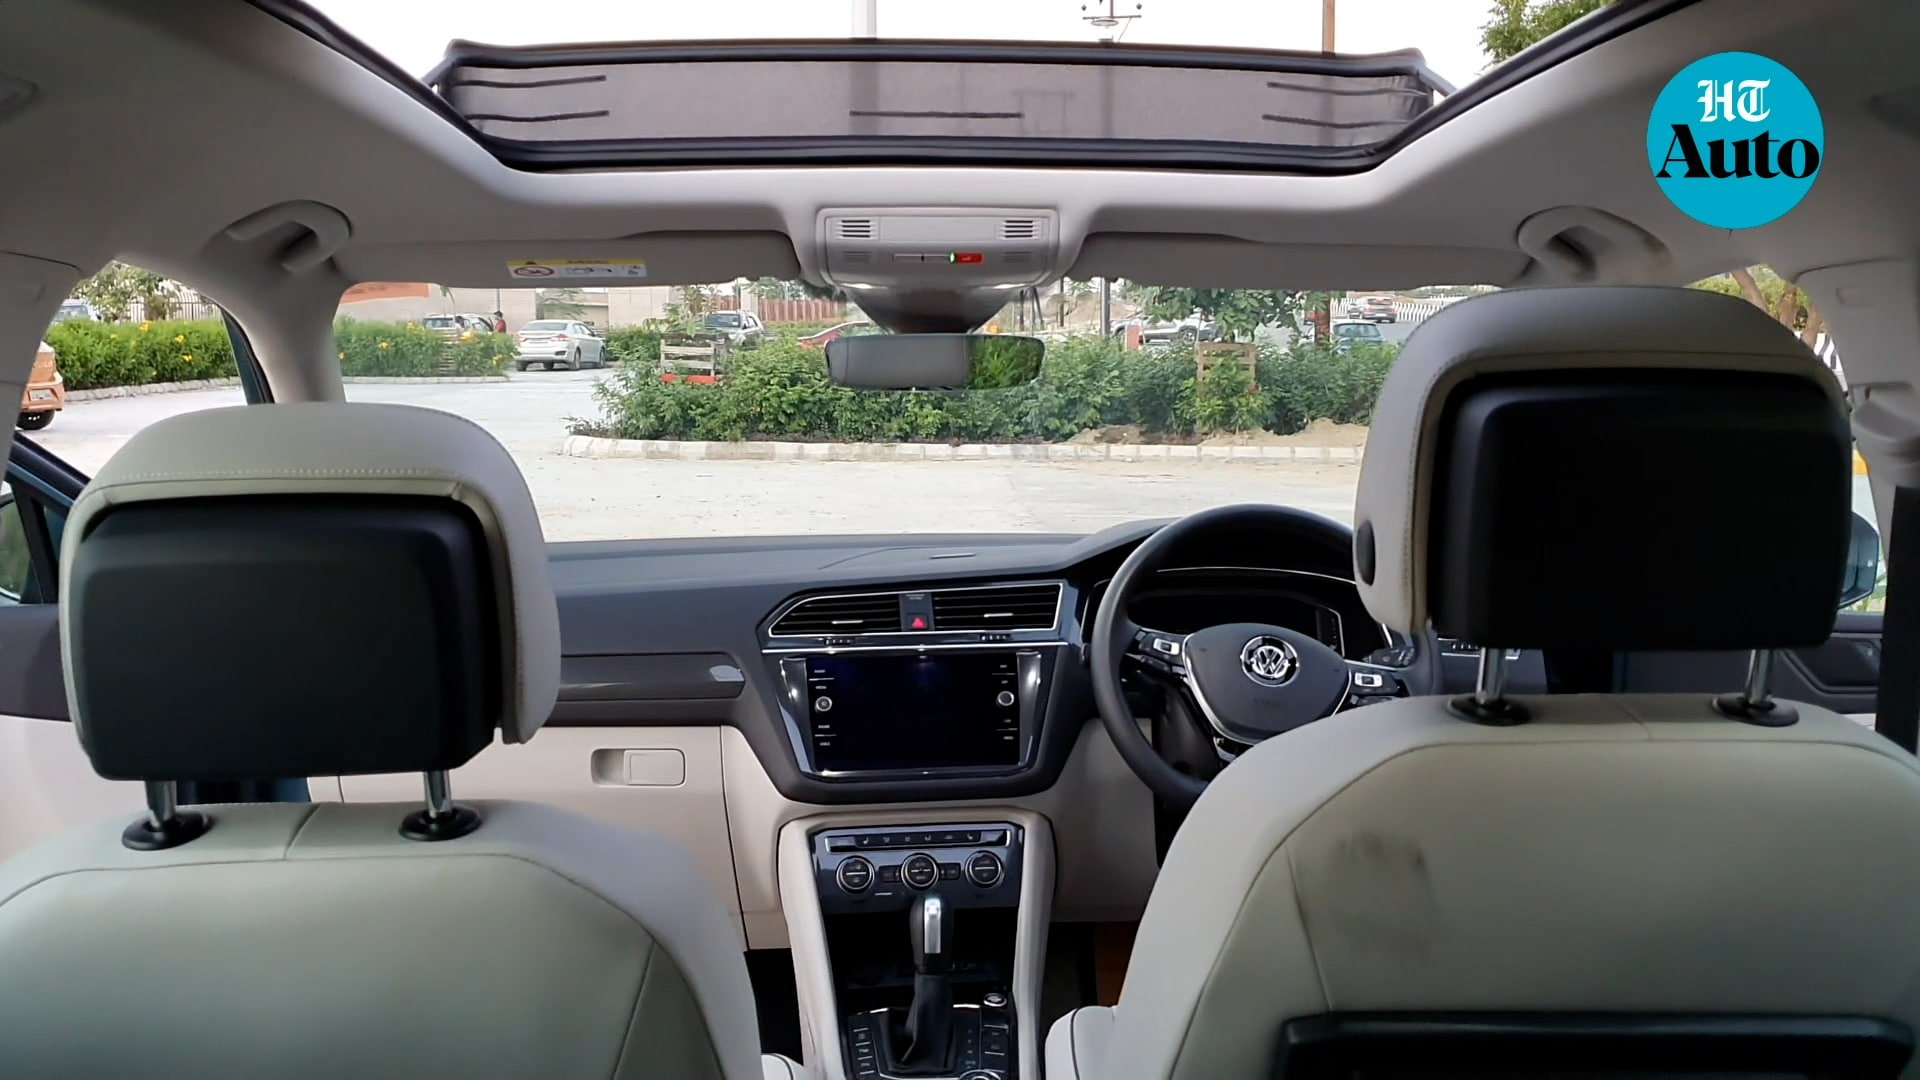 A panoramic sunroof almost completely replaces the ceiling, giving a SUV just that extra touch of class.